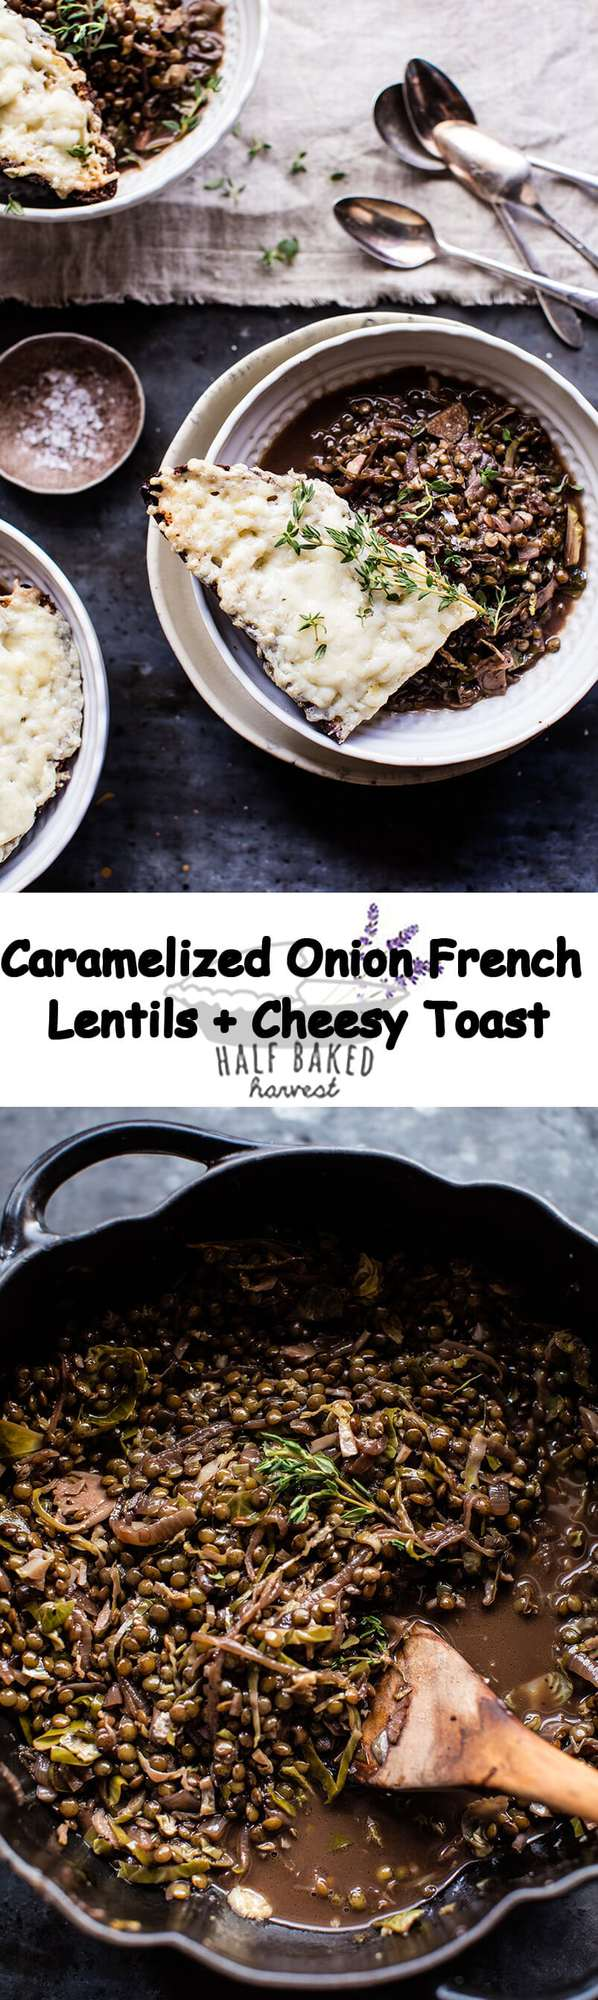 Caramelized Onion French Lentils and Cheesy Toast | halfbakedharvest.com @hbharvest